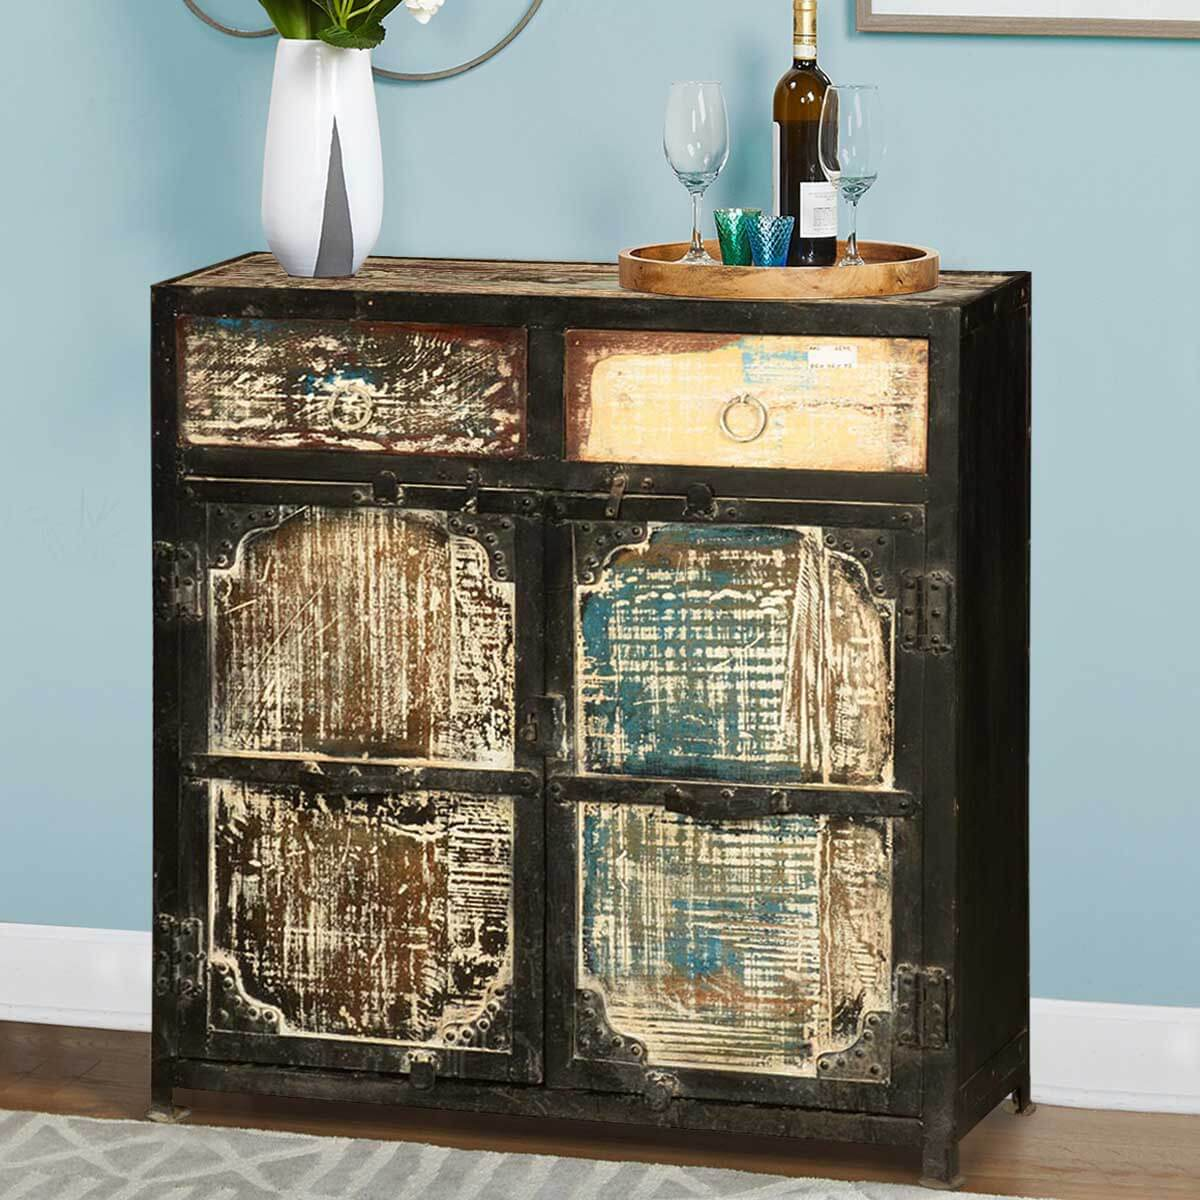 Sideboard Real Creston Rustic Reclaimed Wood 2 Drawer Industrial Buffet Cabinet